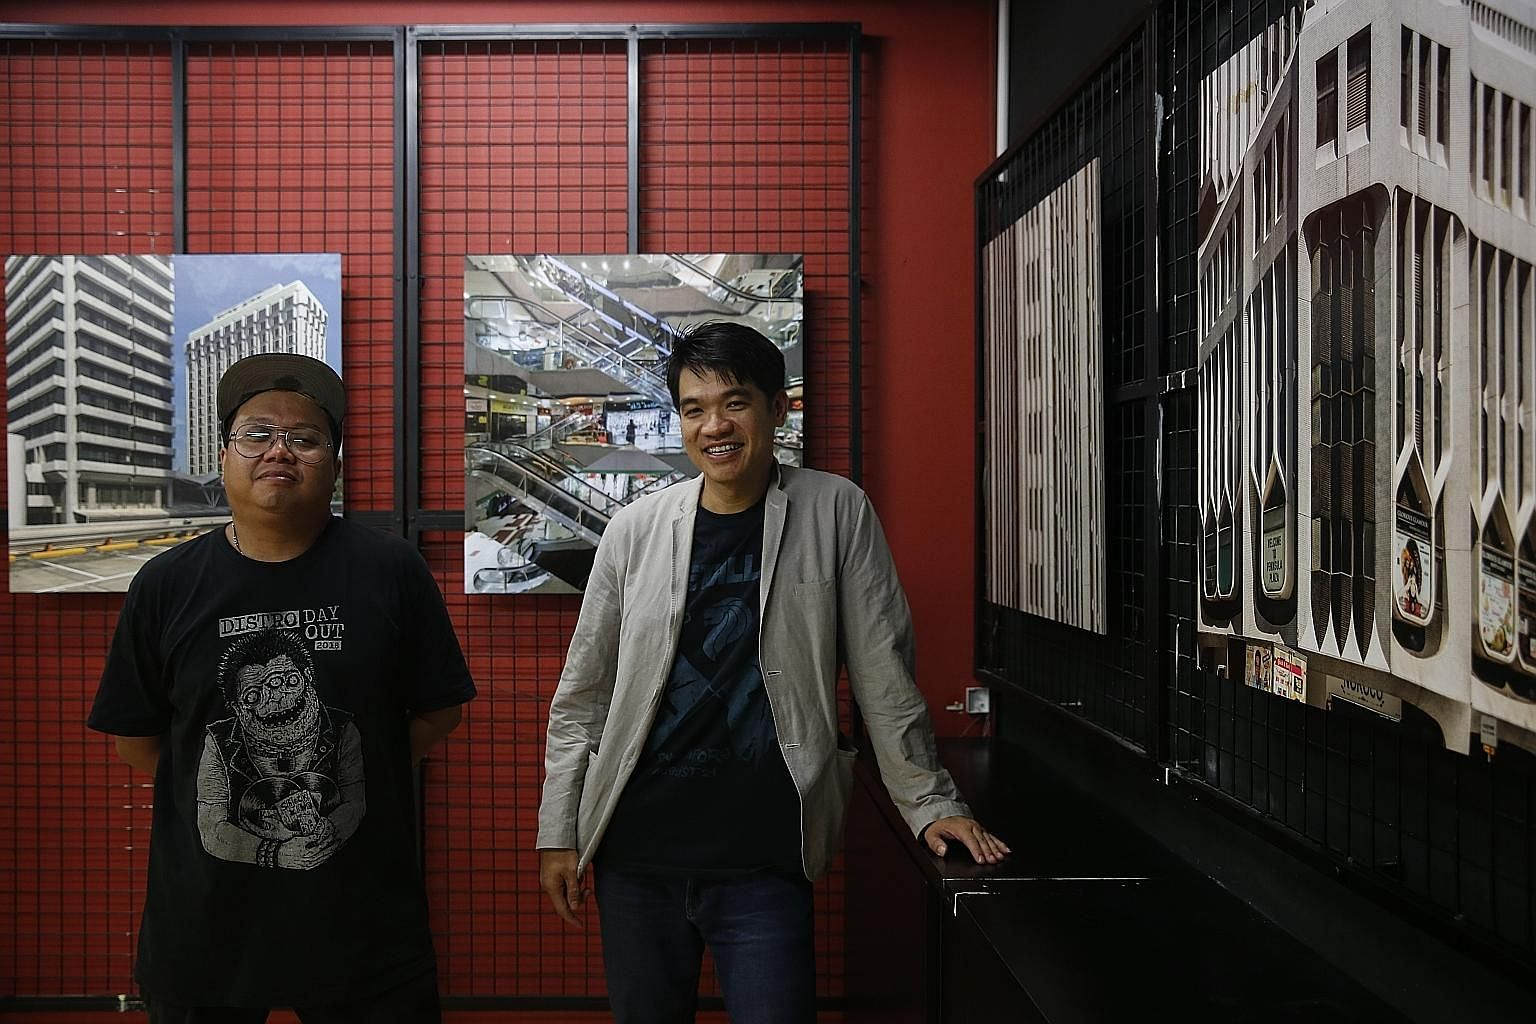 Artist Shaiful Risan (far left) and Assistant Professor Liew Kai Khiun are curators of The Mall Museum, a temporary walk-in exhibition that is taking a look at some of the older shopping complexes in Singapore.